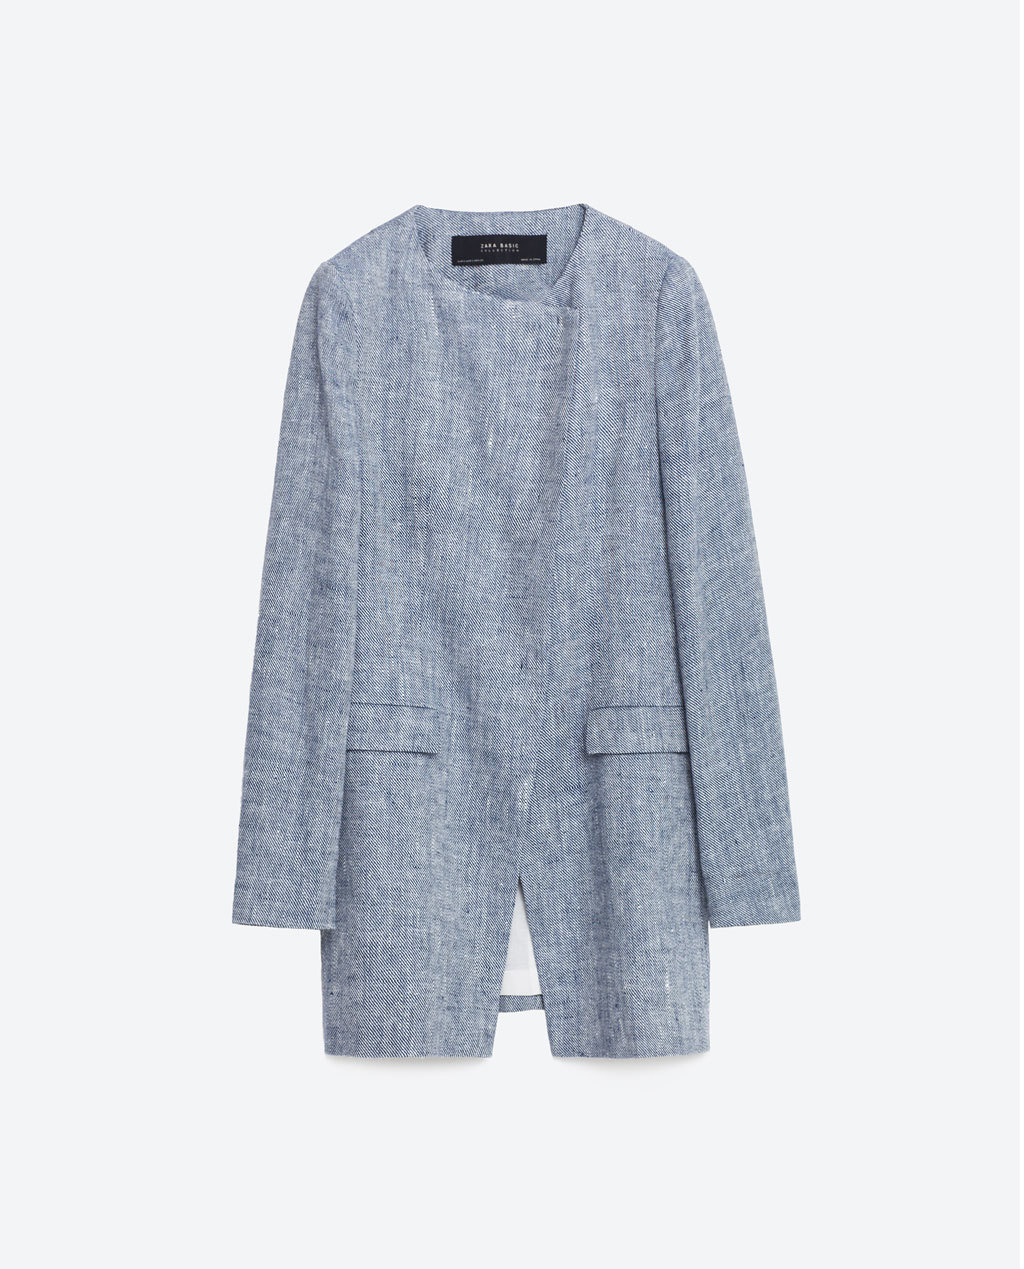 Linen Blazer - style: single breasted blazer; collar: round collar/collarless; length: below the bottom; secondary colour: white; predominant colour: pale blue; occasions: casual, creative work; fit: straight cut (boxy); fibres: linen - 100%; sleeve length: long sleeve; sleeve style: standard; collar break: high; pattern type: fabric; pattern size: light/subtle; texture group: woven light midweight; pattern: marl; season: s/s 2016; wardrobe: highlight; embellishment location: hip